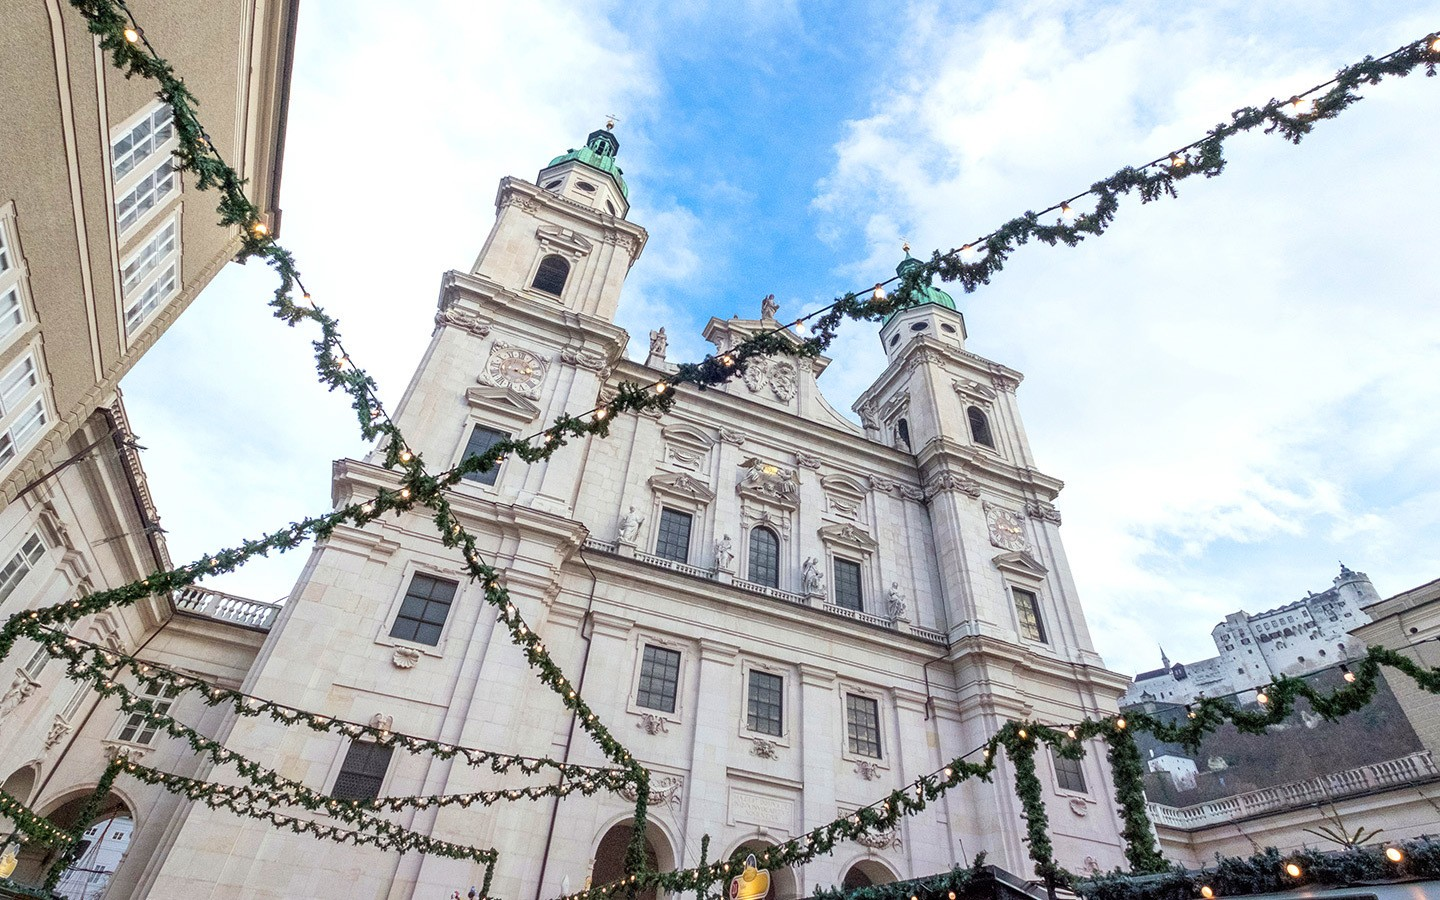 Mozart and markets: What to see and do in Salzburg in winter